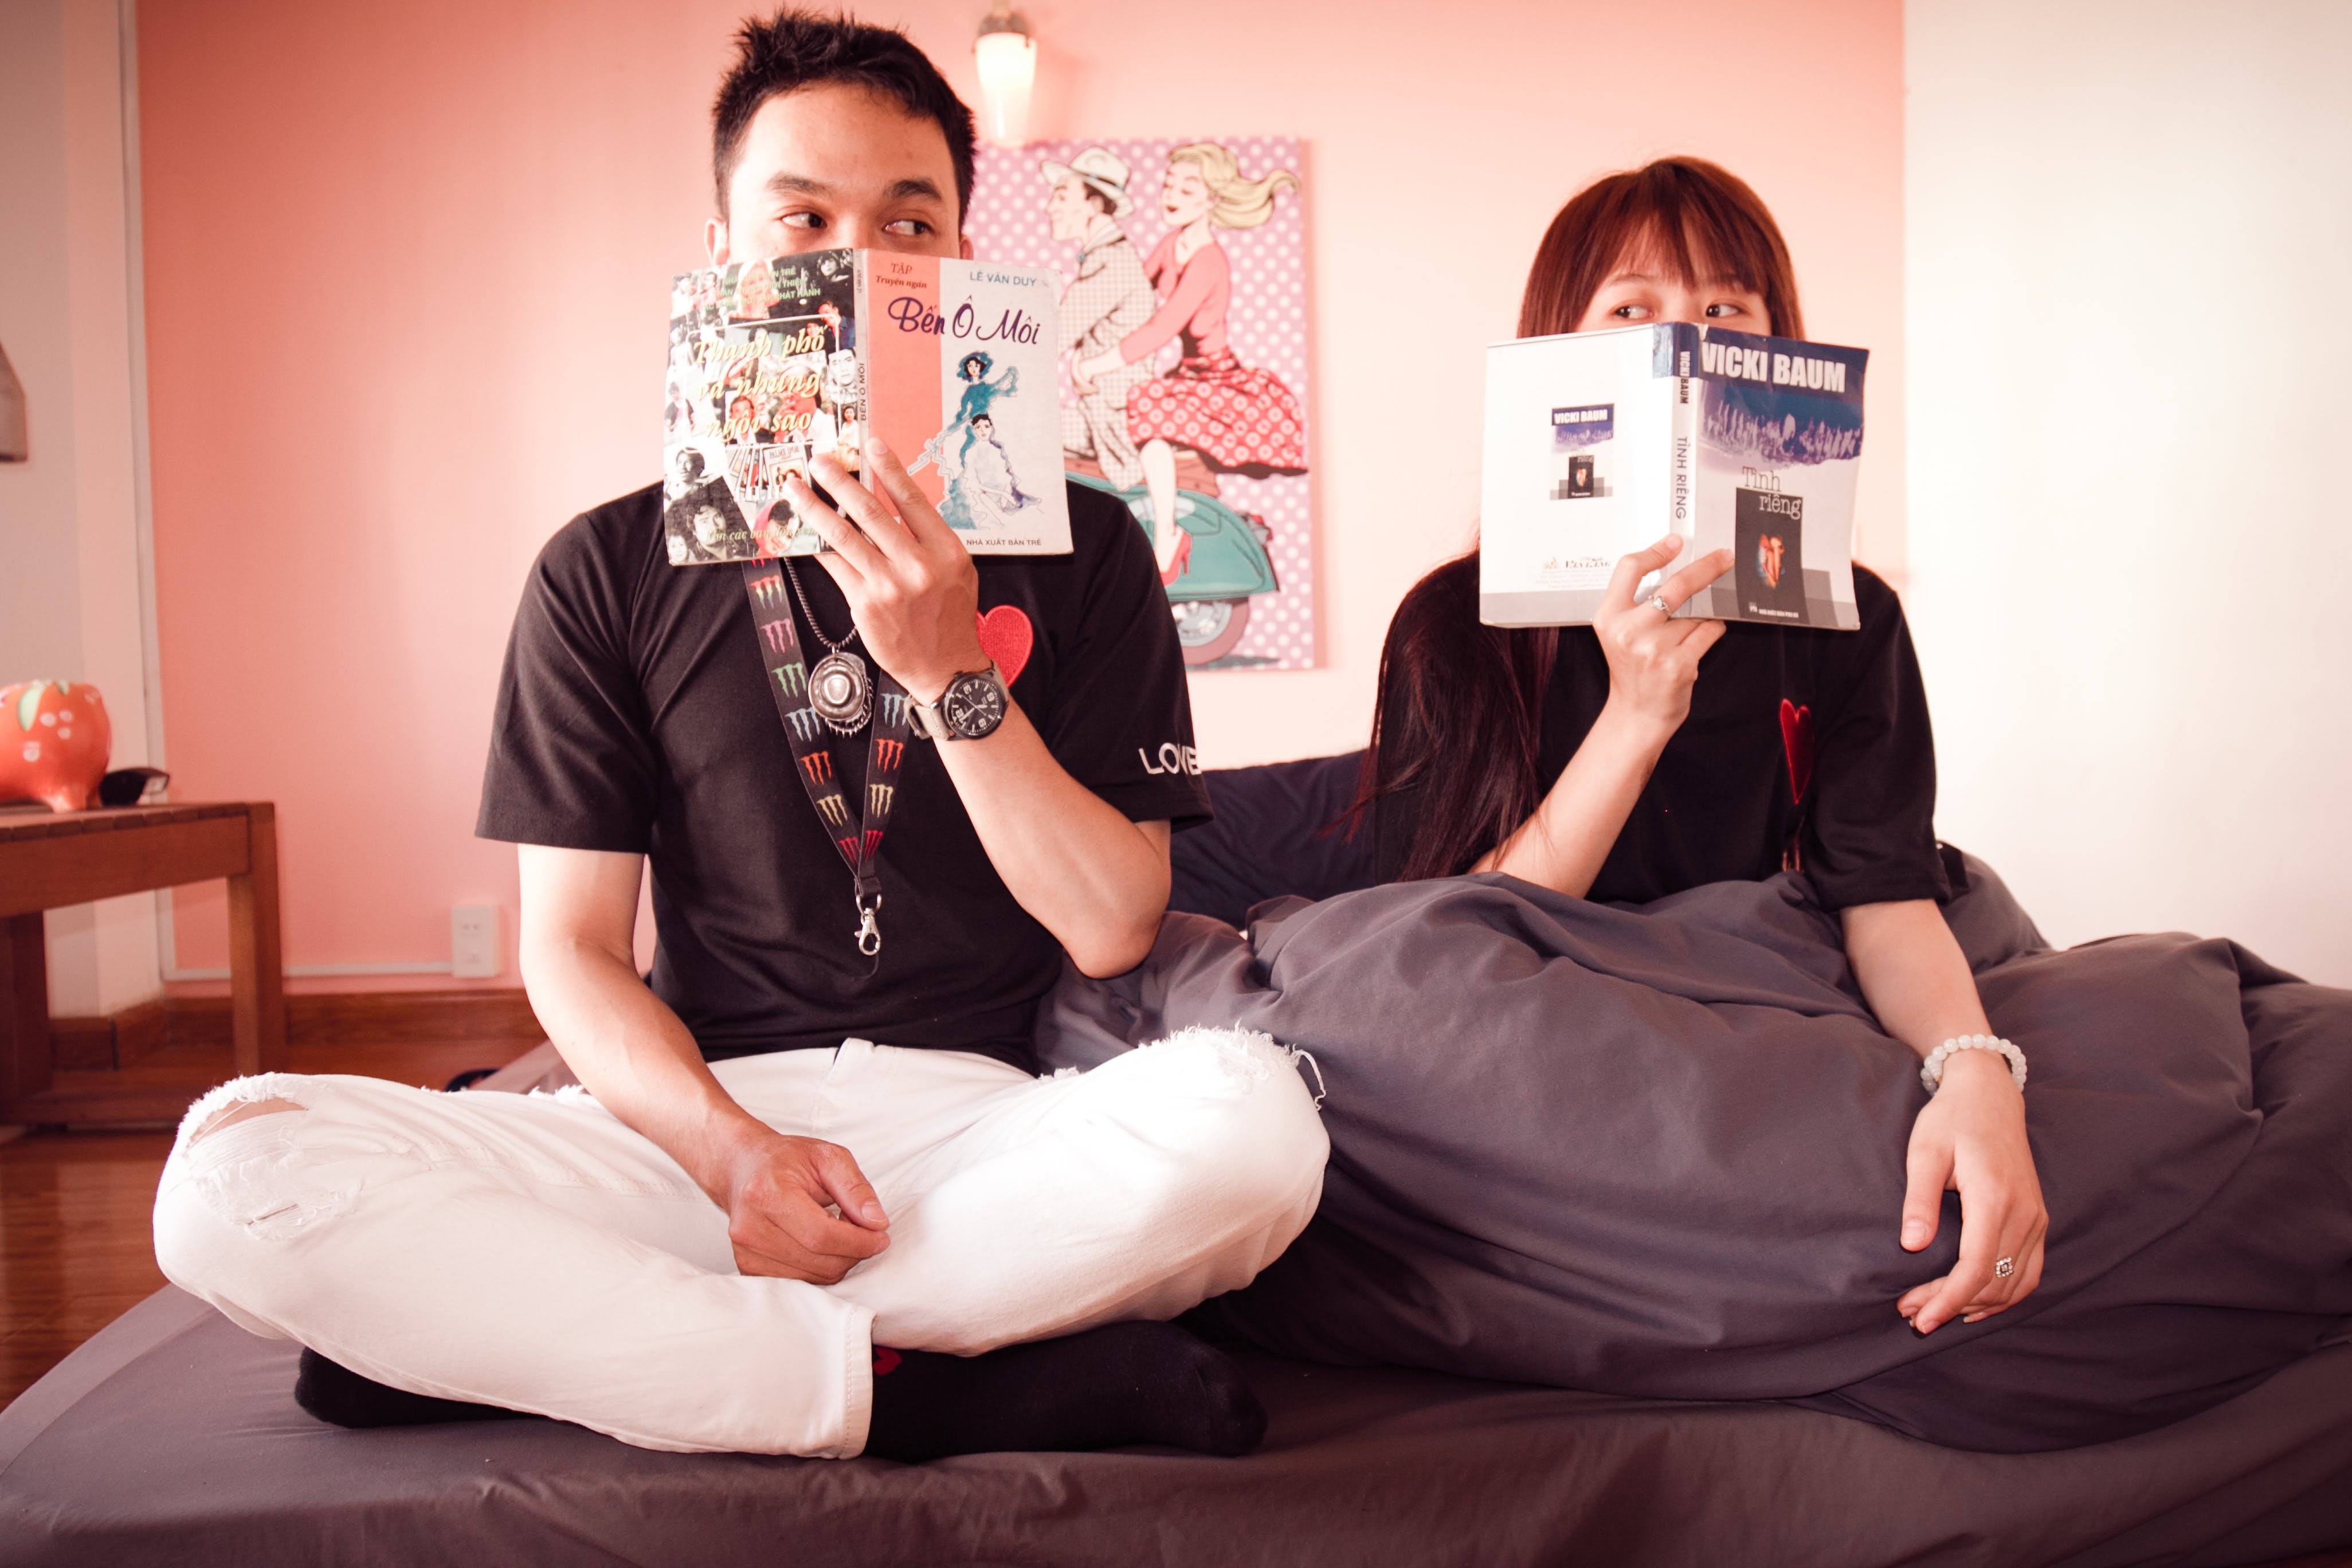 Couple holding books sitting on bed | Photo: Pexels